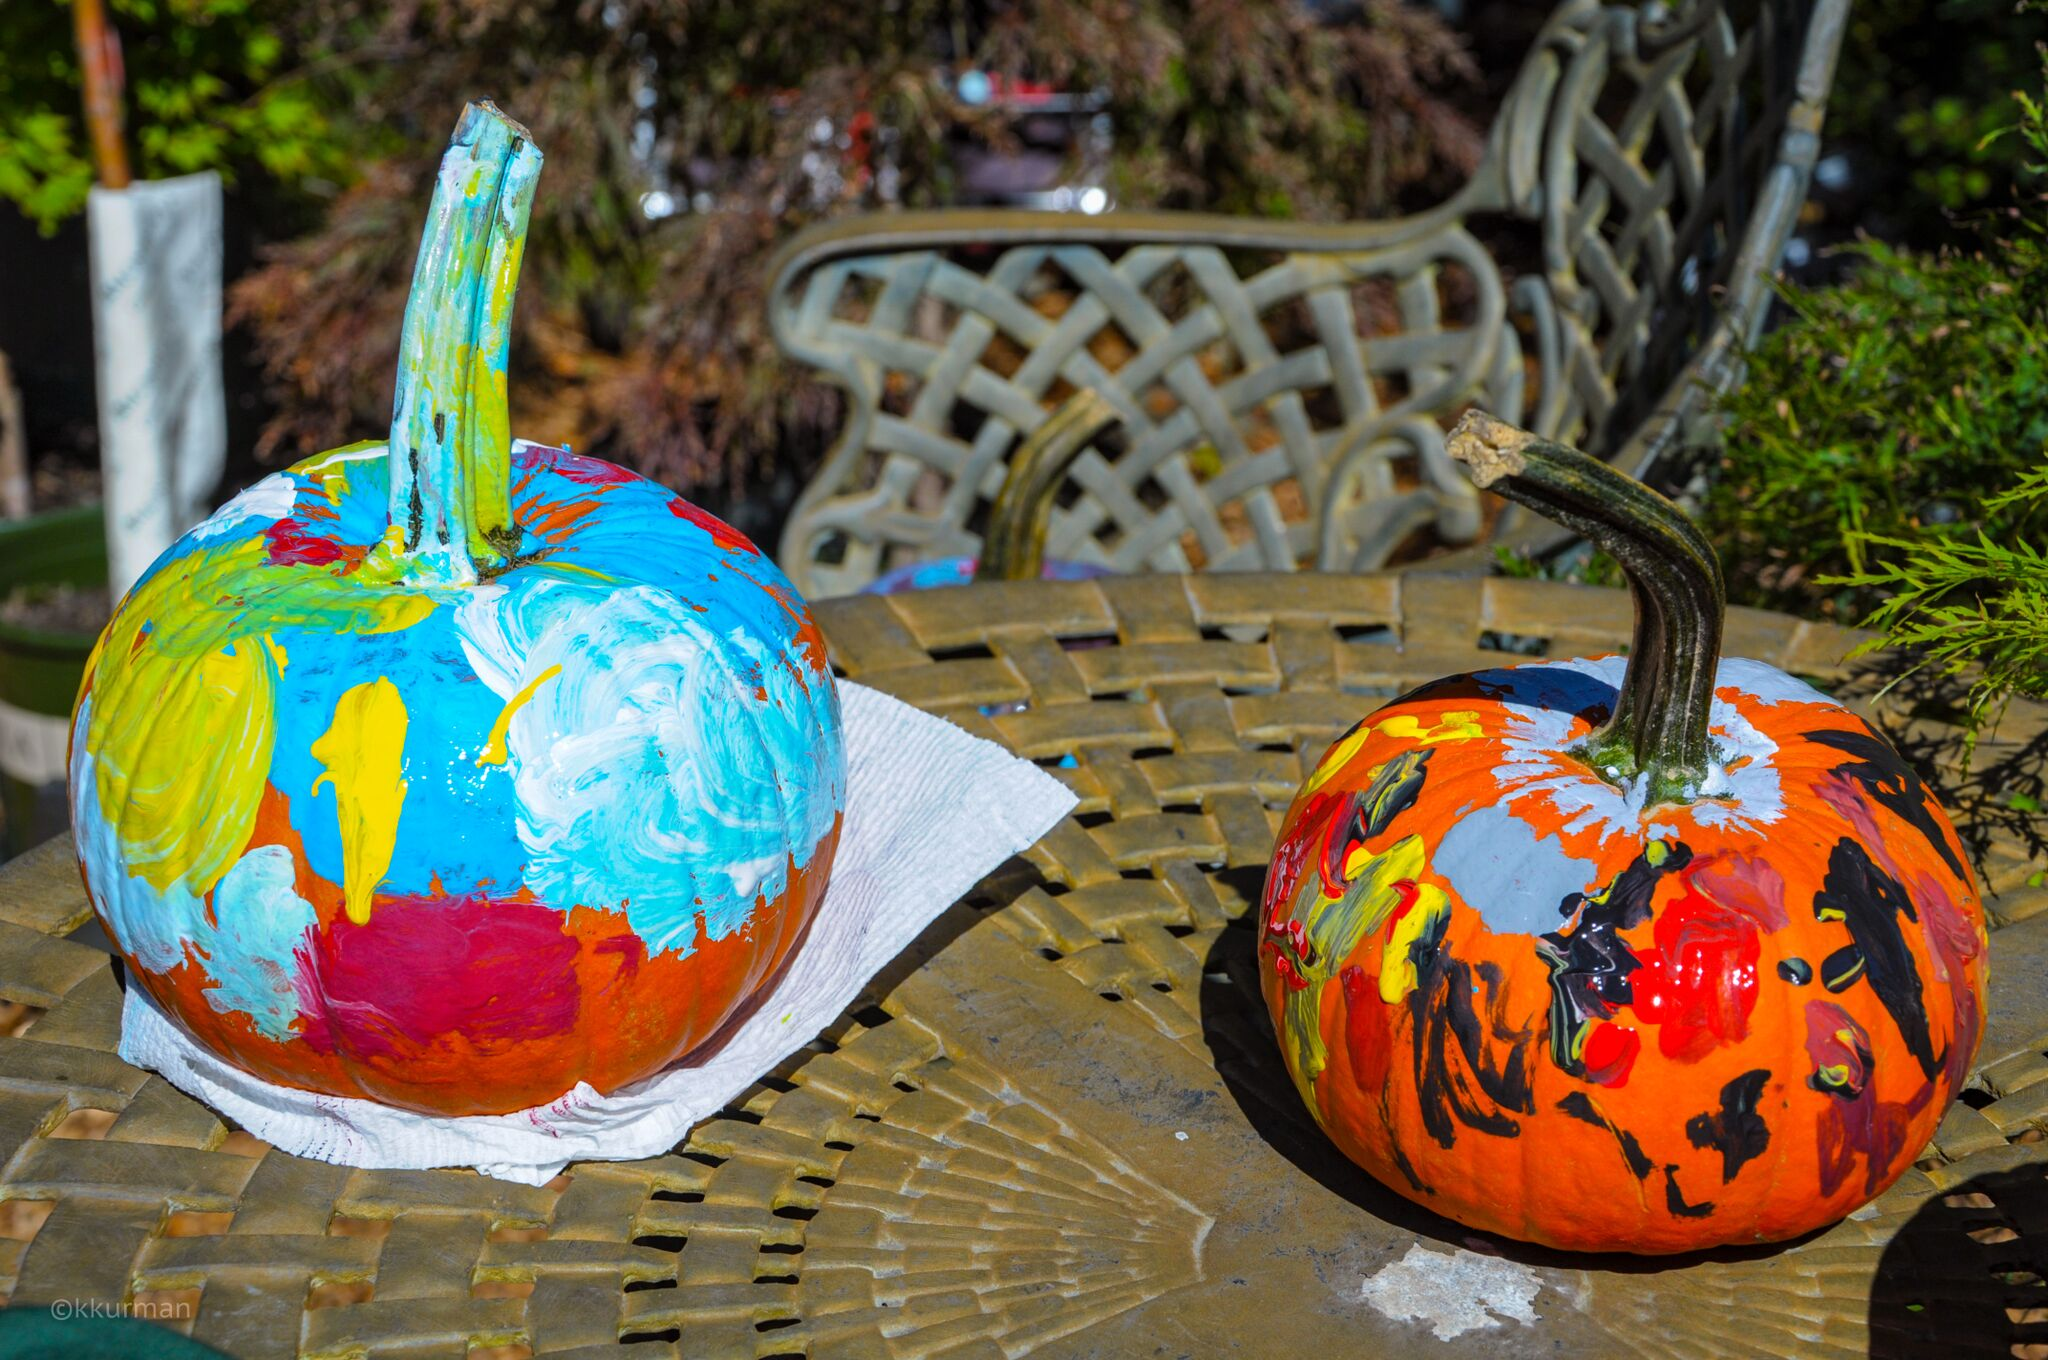 Pumpkins worthy of the Modern Art Museum!